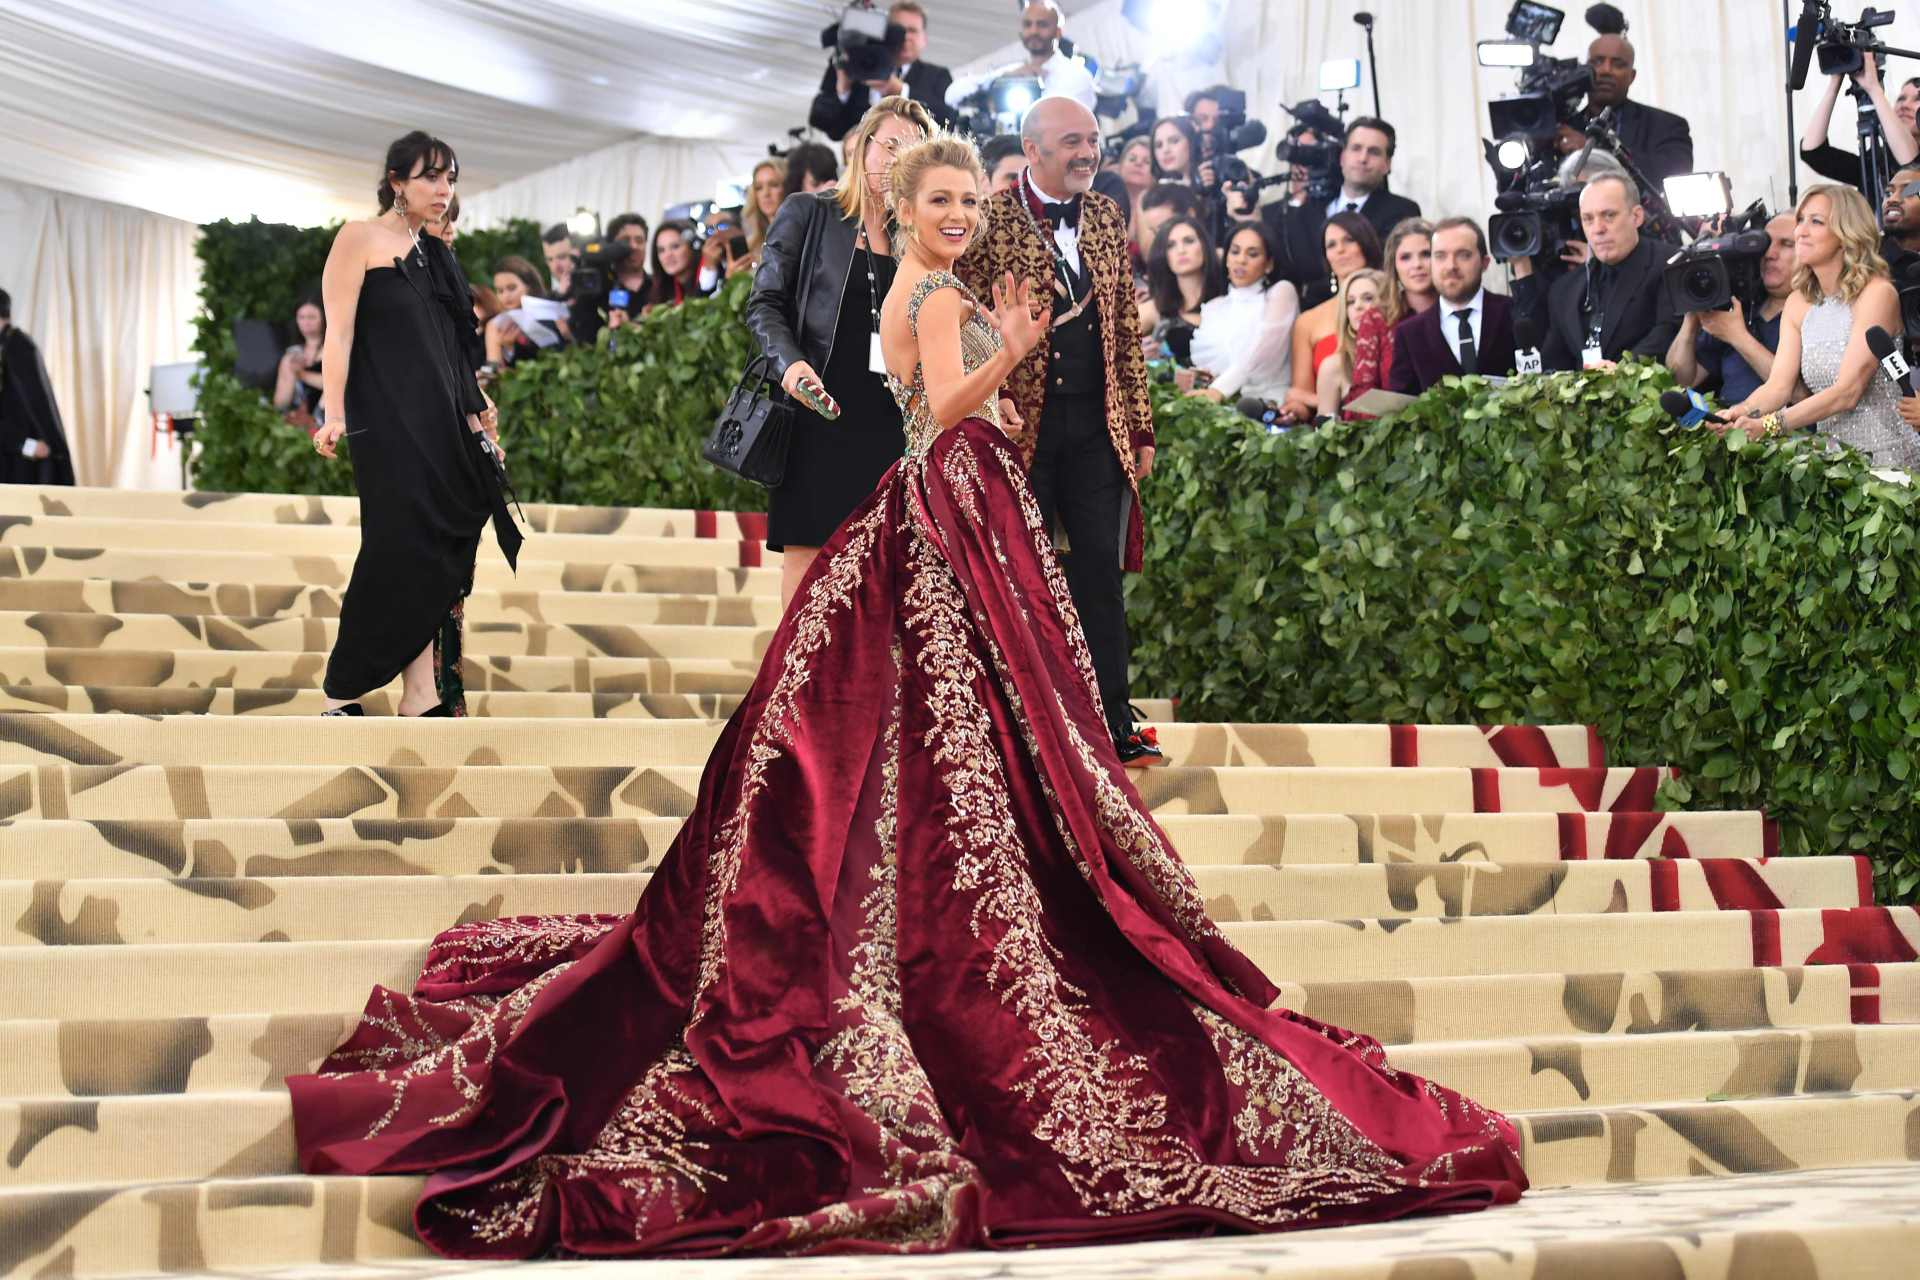 OVER THE TOP: Blake Lively Wears 'FAVORITE DRESS' and $2 MILLION JEWELS to Met Gala 2018